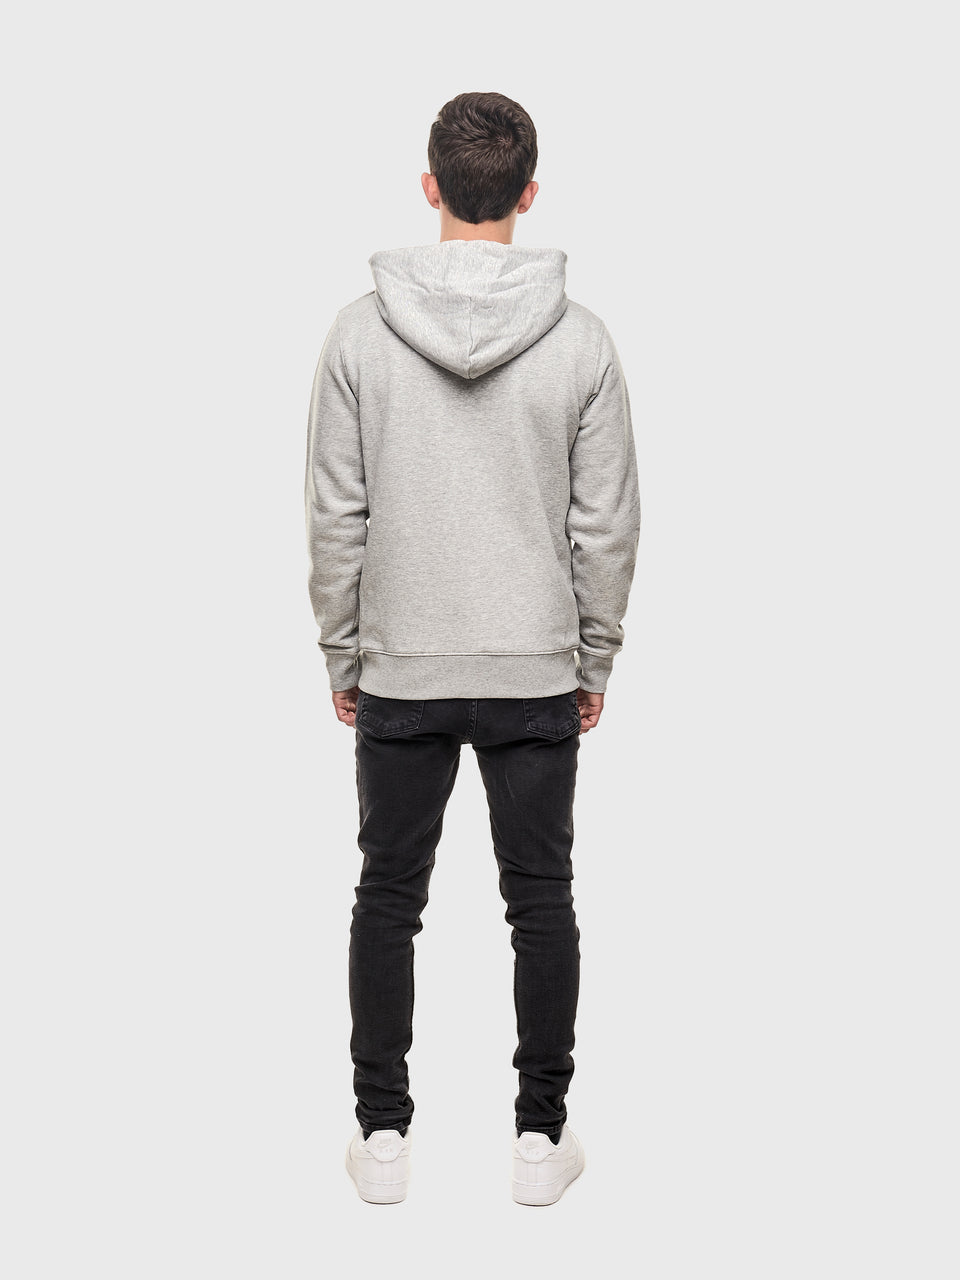 i.am EL&N - Grey / White / Pink - Unisex pull over hoodie